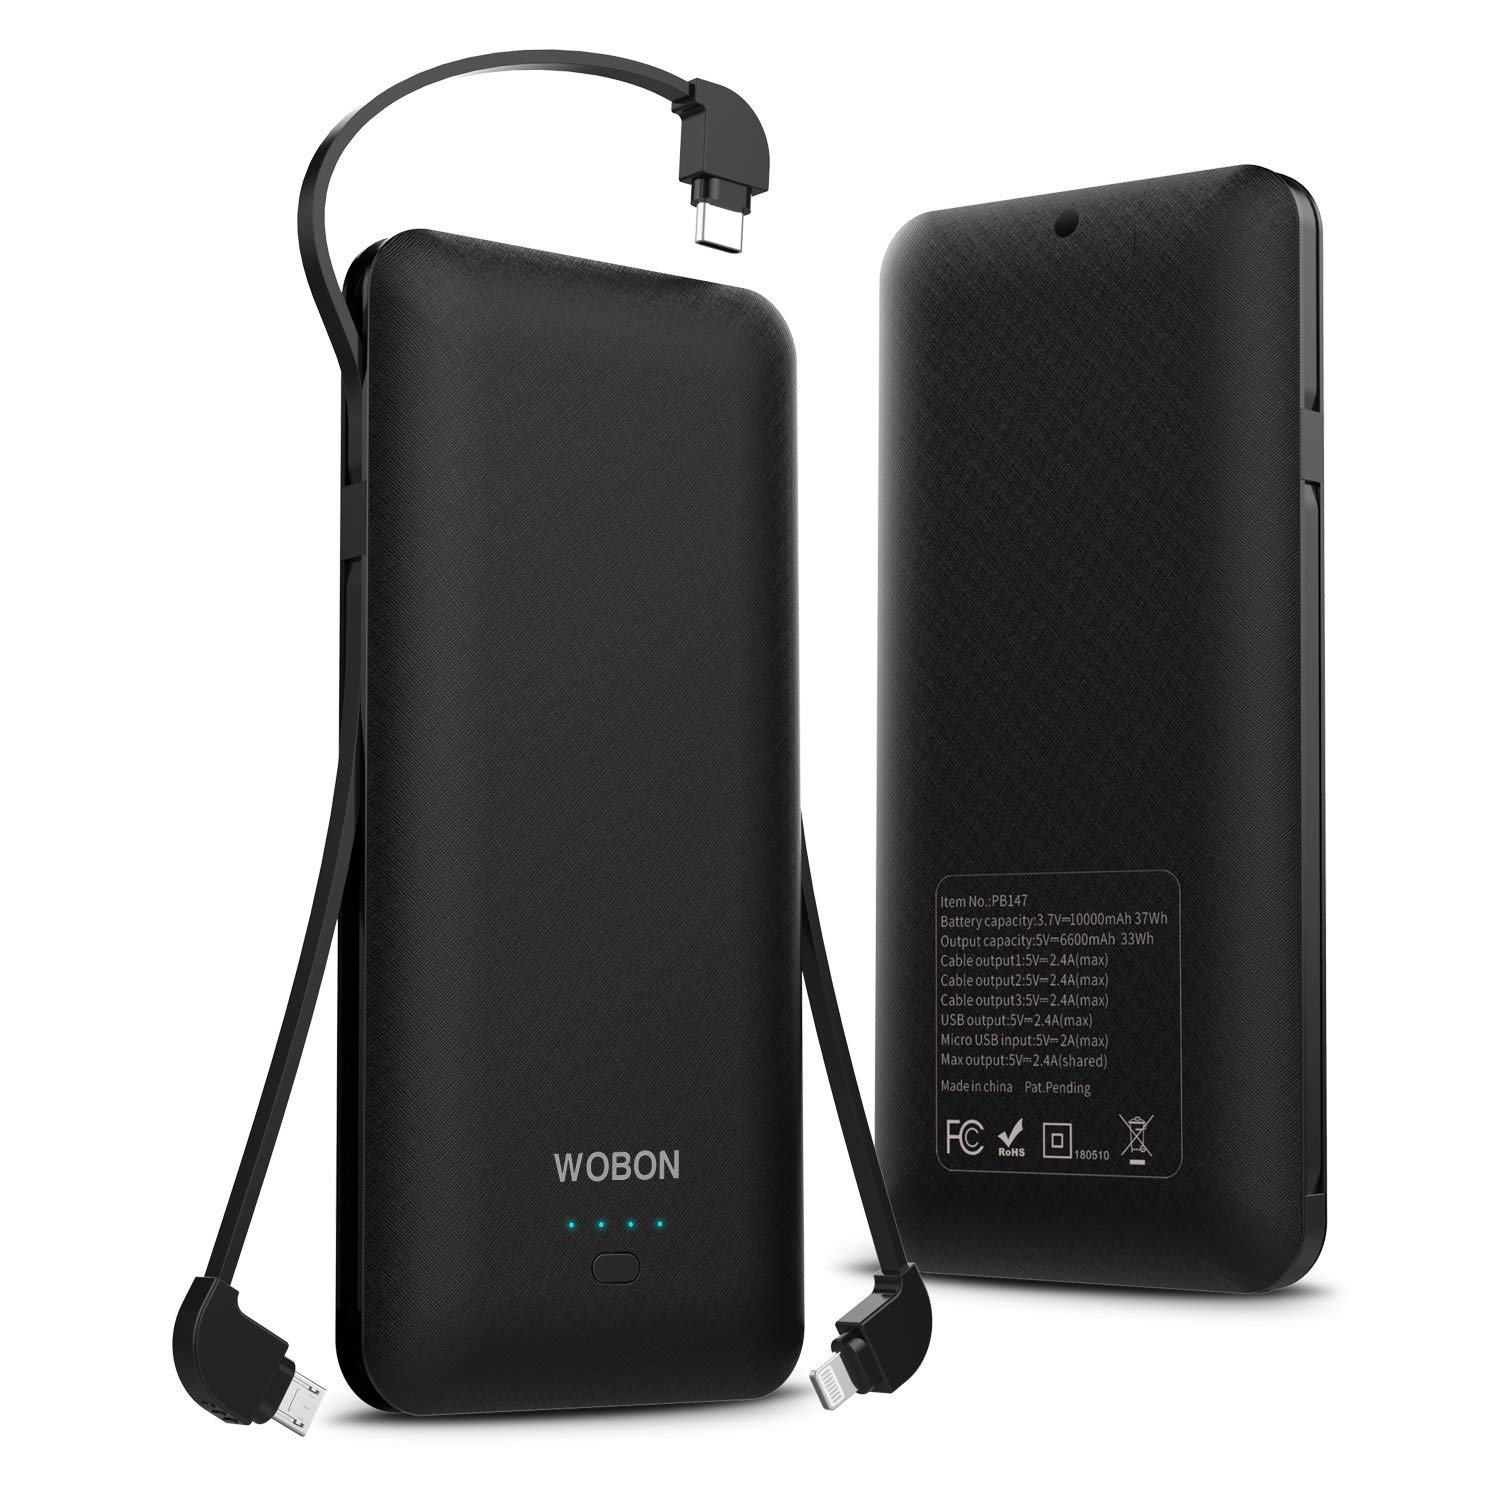 WOBON Portable Charger 10000mAh Compact Power Bank External Battery Pack Ultra Slim and Light Battery Charger with Built-in Micro USB Type-c Lightning Cable for iphone, Android and More(Black)